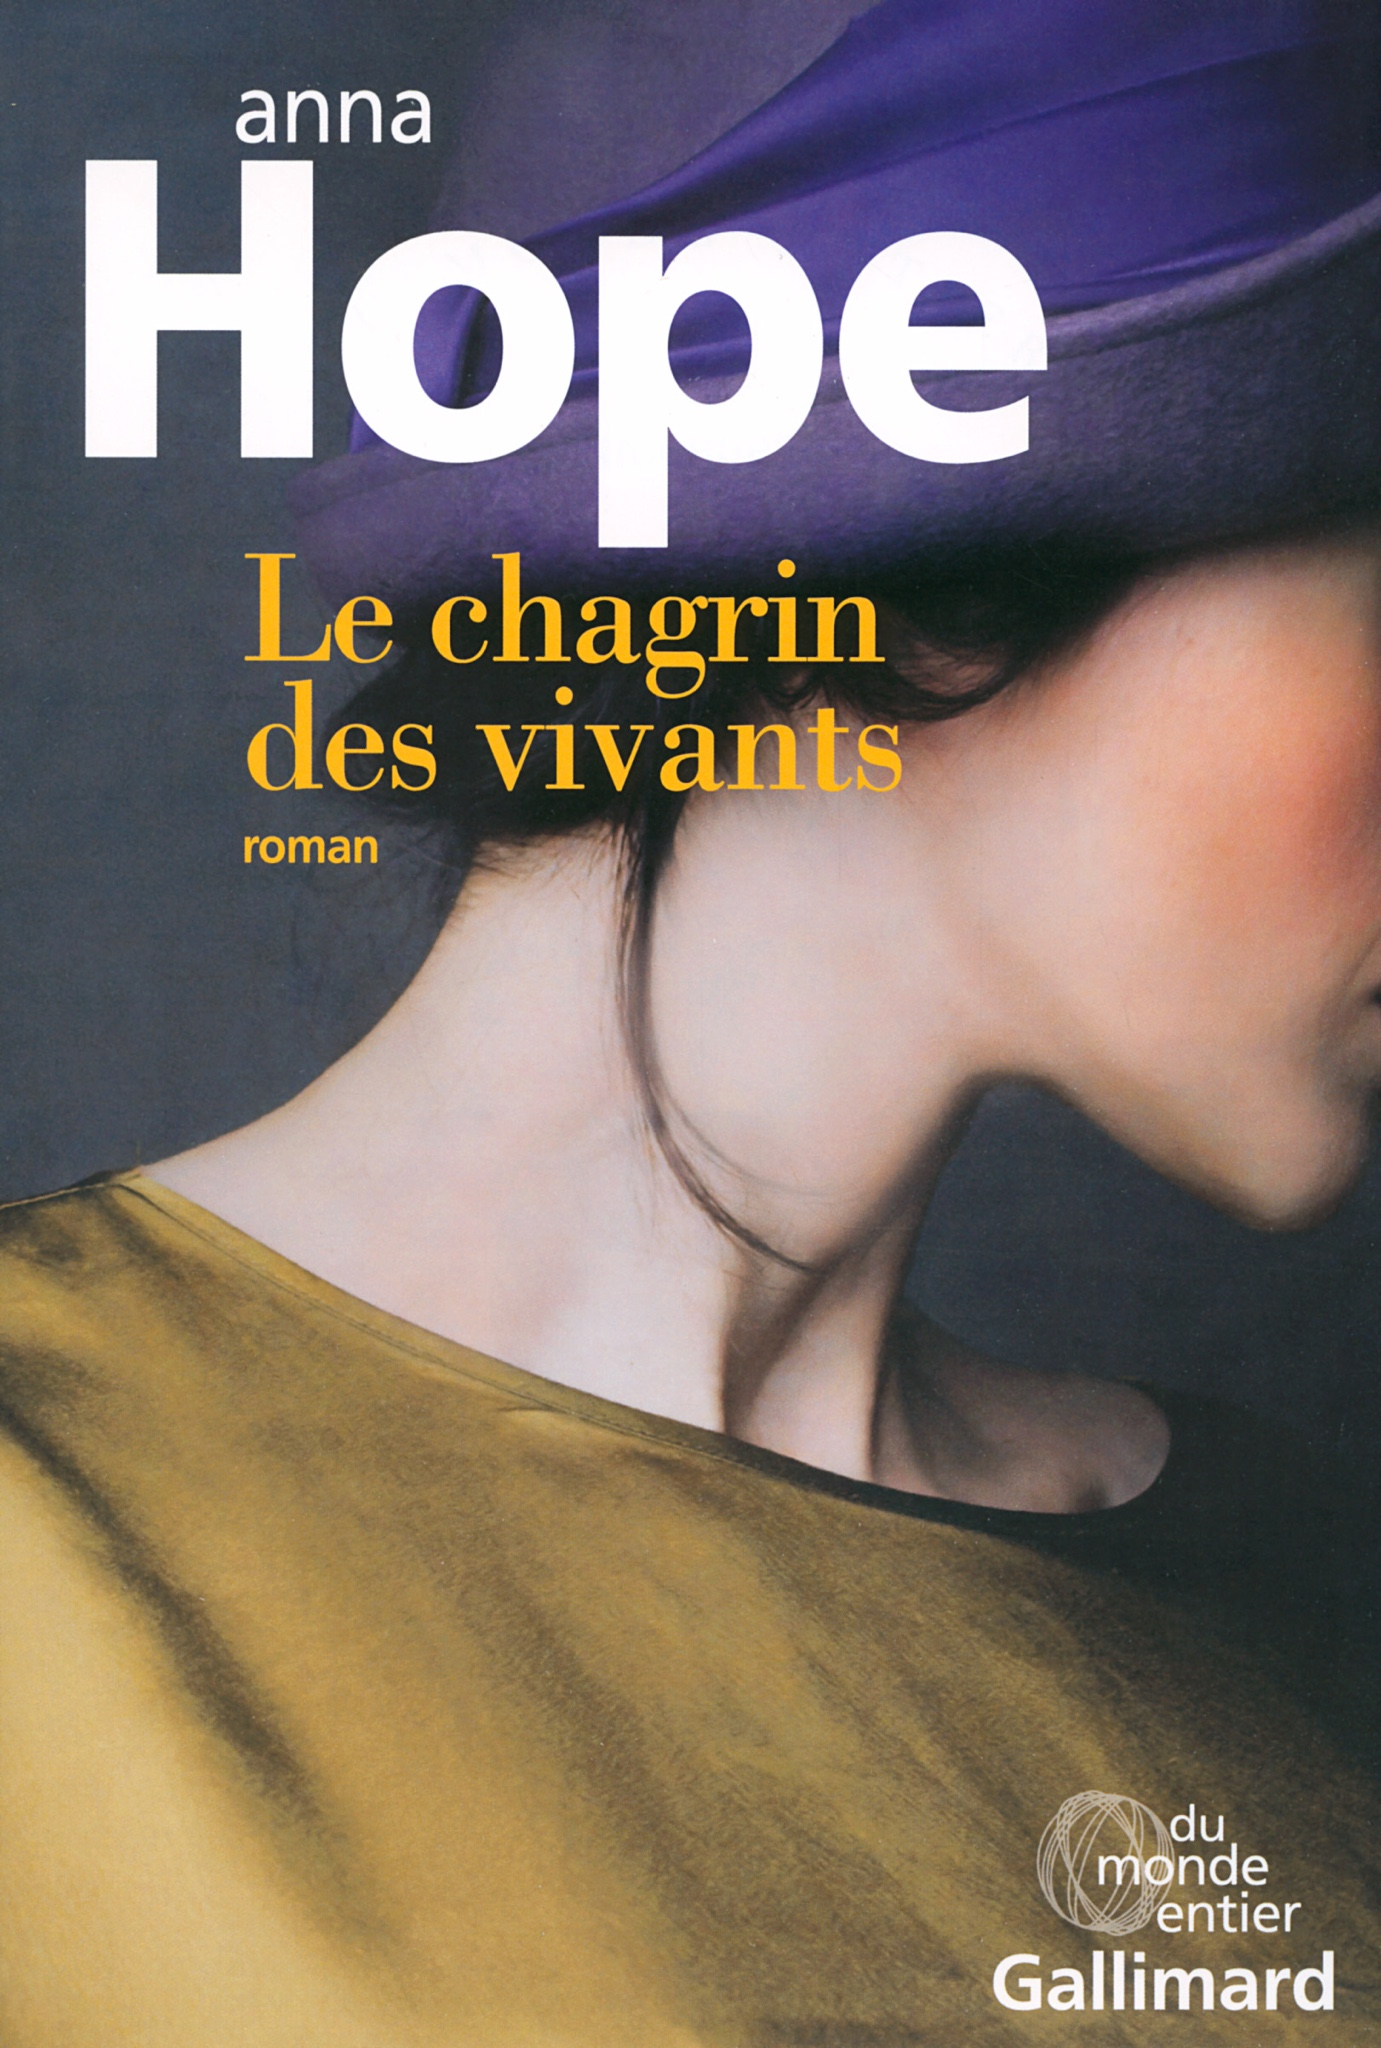 Anna Hope : Le chagrin des vivants